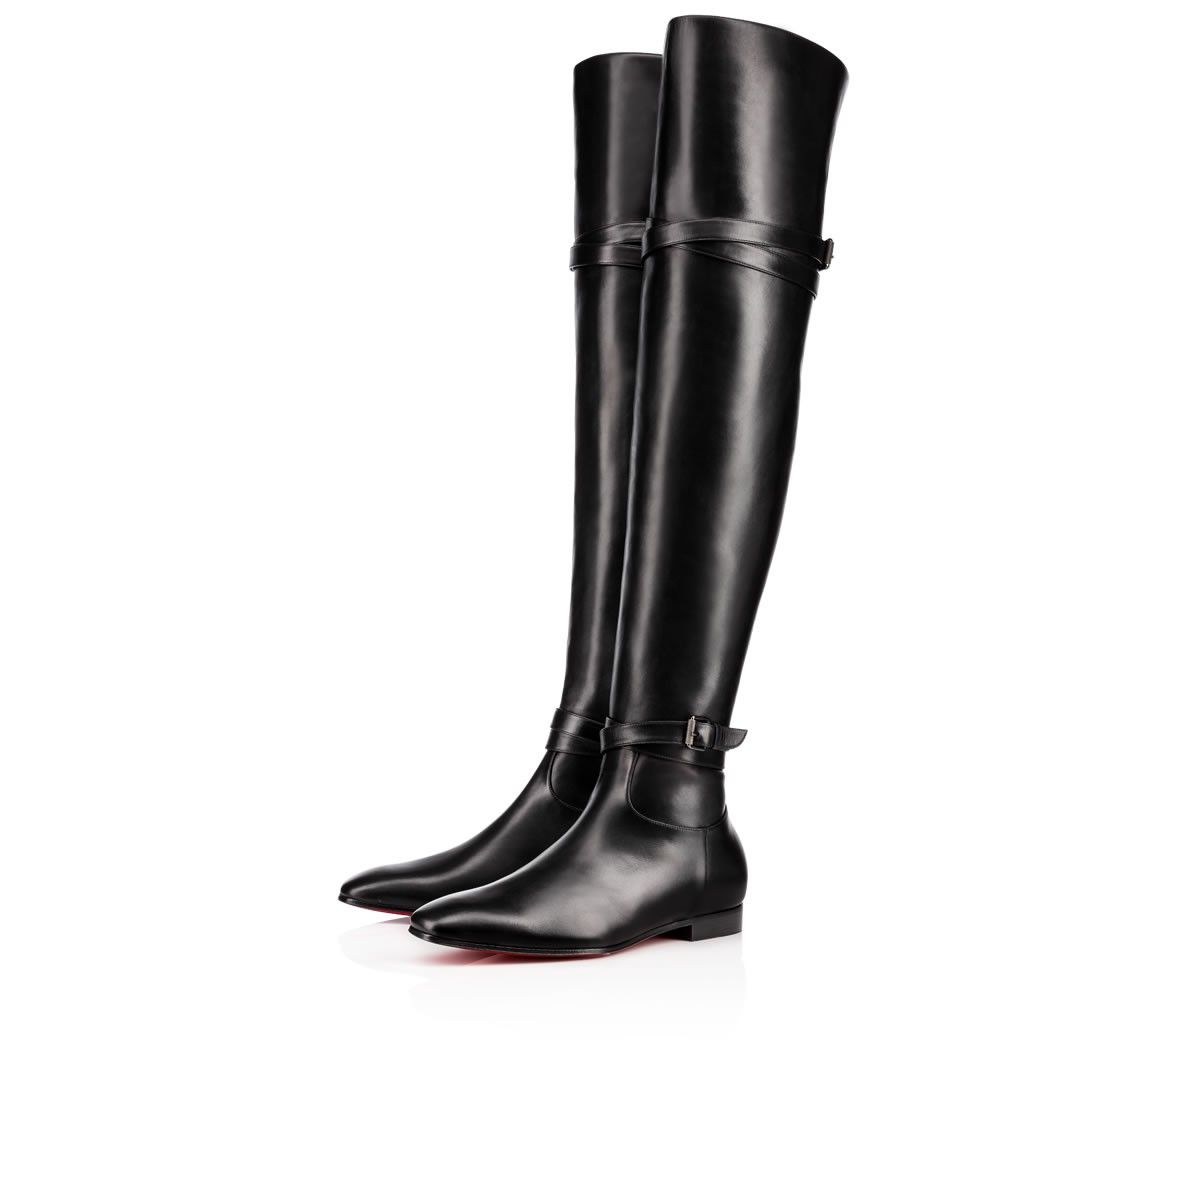 7d226ef2116 ... thigh-high black leather boots with equestrian wrap-around buckle strap  detail at the ankle and knee and an interior side zip